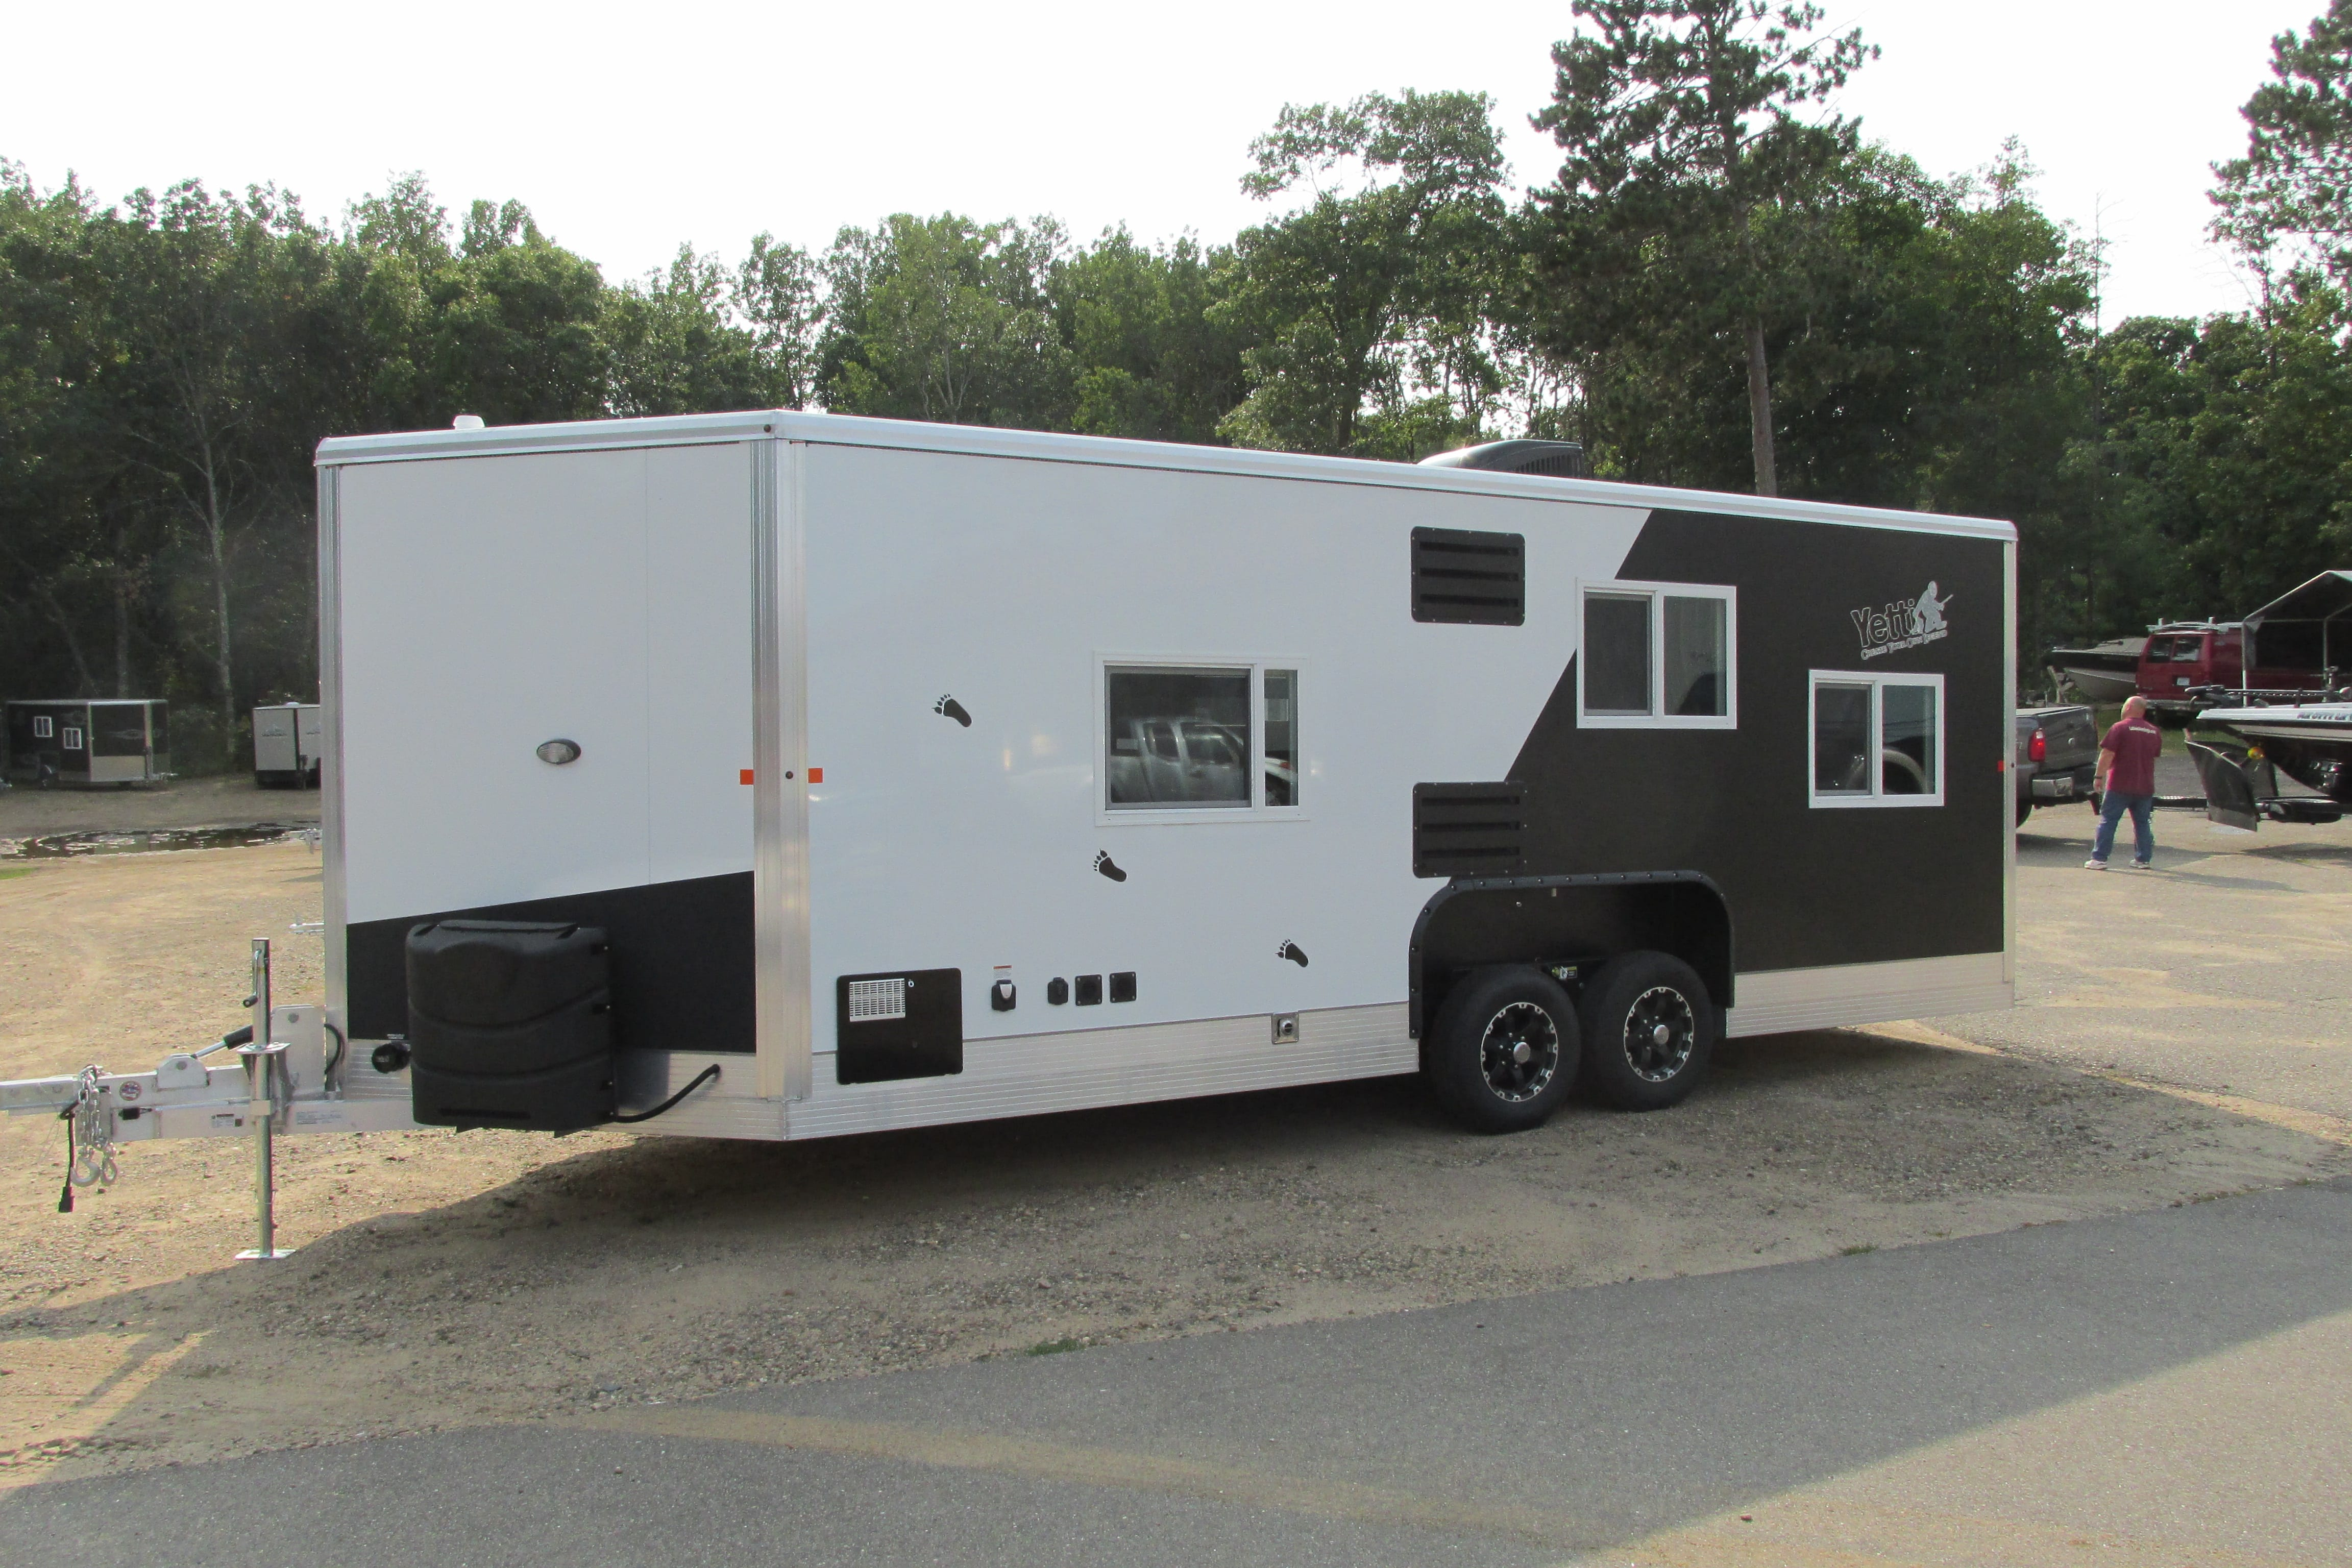 Coming soon 2018 full rv fish house yetti traxx edition for Aluminum fish house